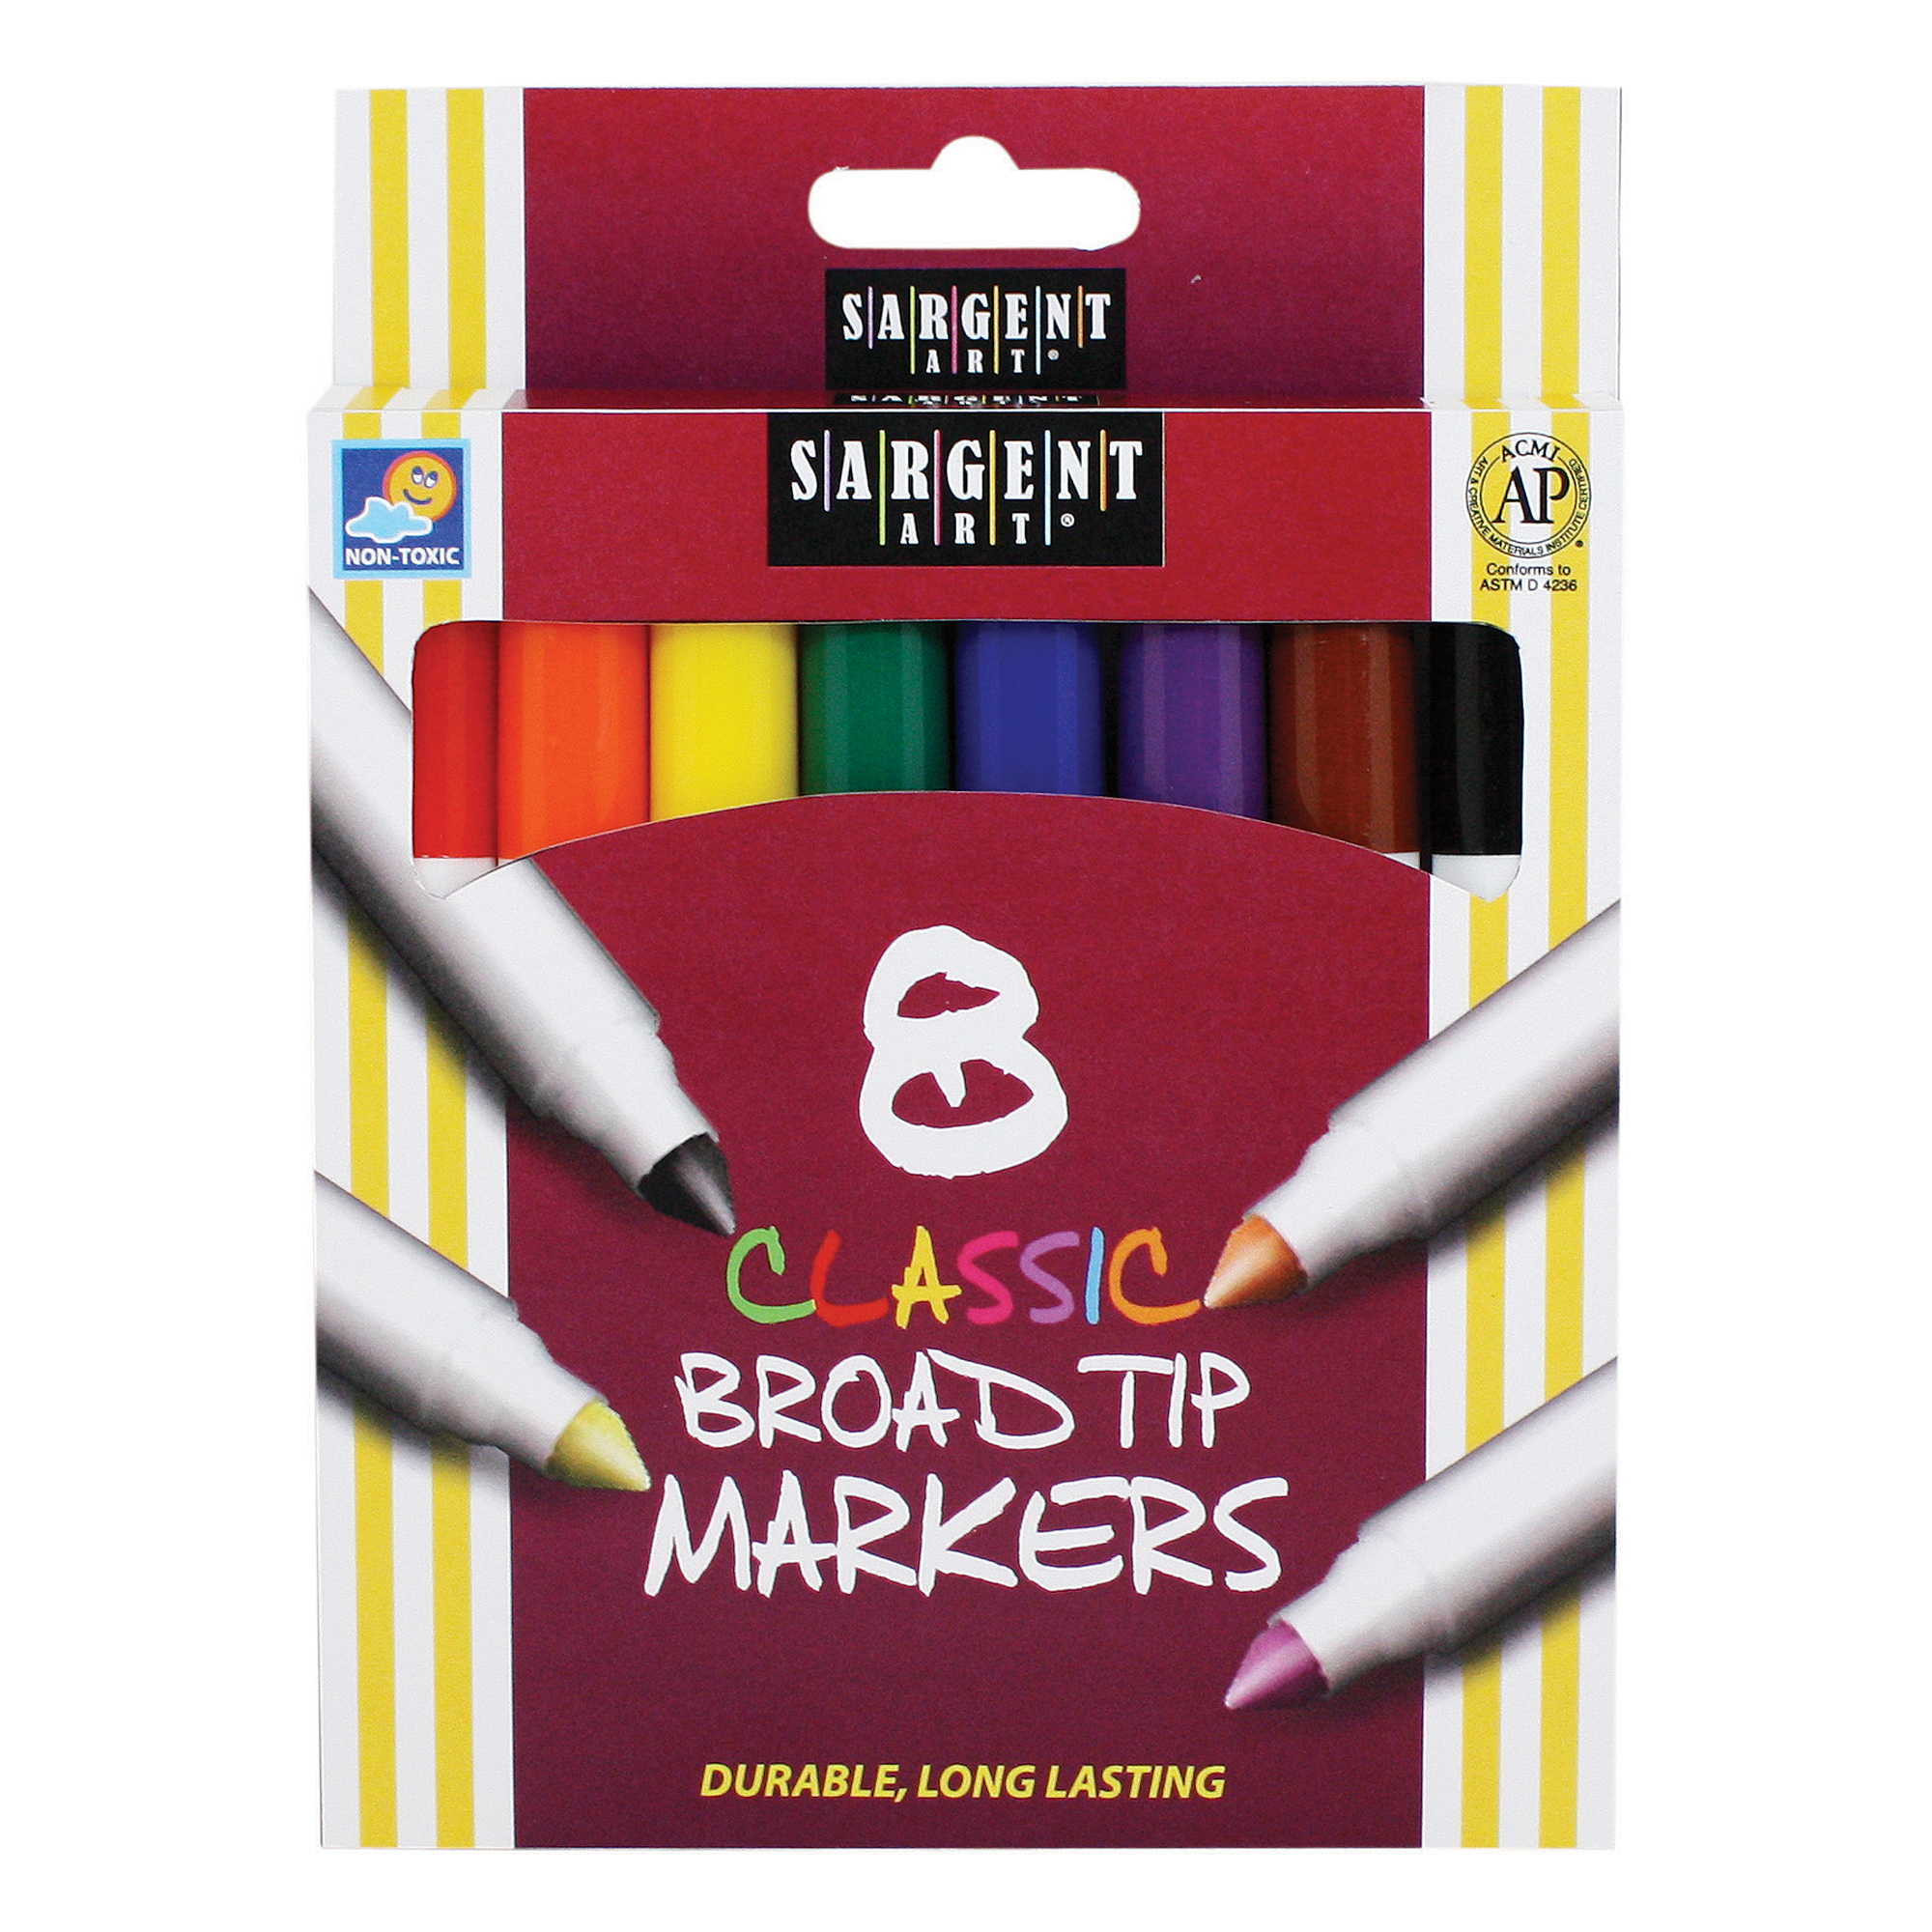 Sargent Art Classic Markers, Broad Tip, Assorted Colors, Box Of 8